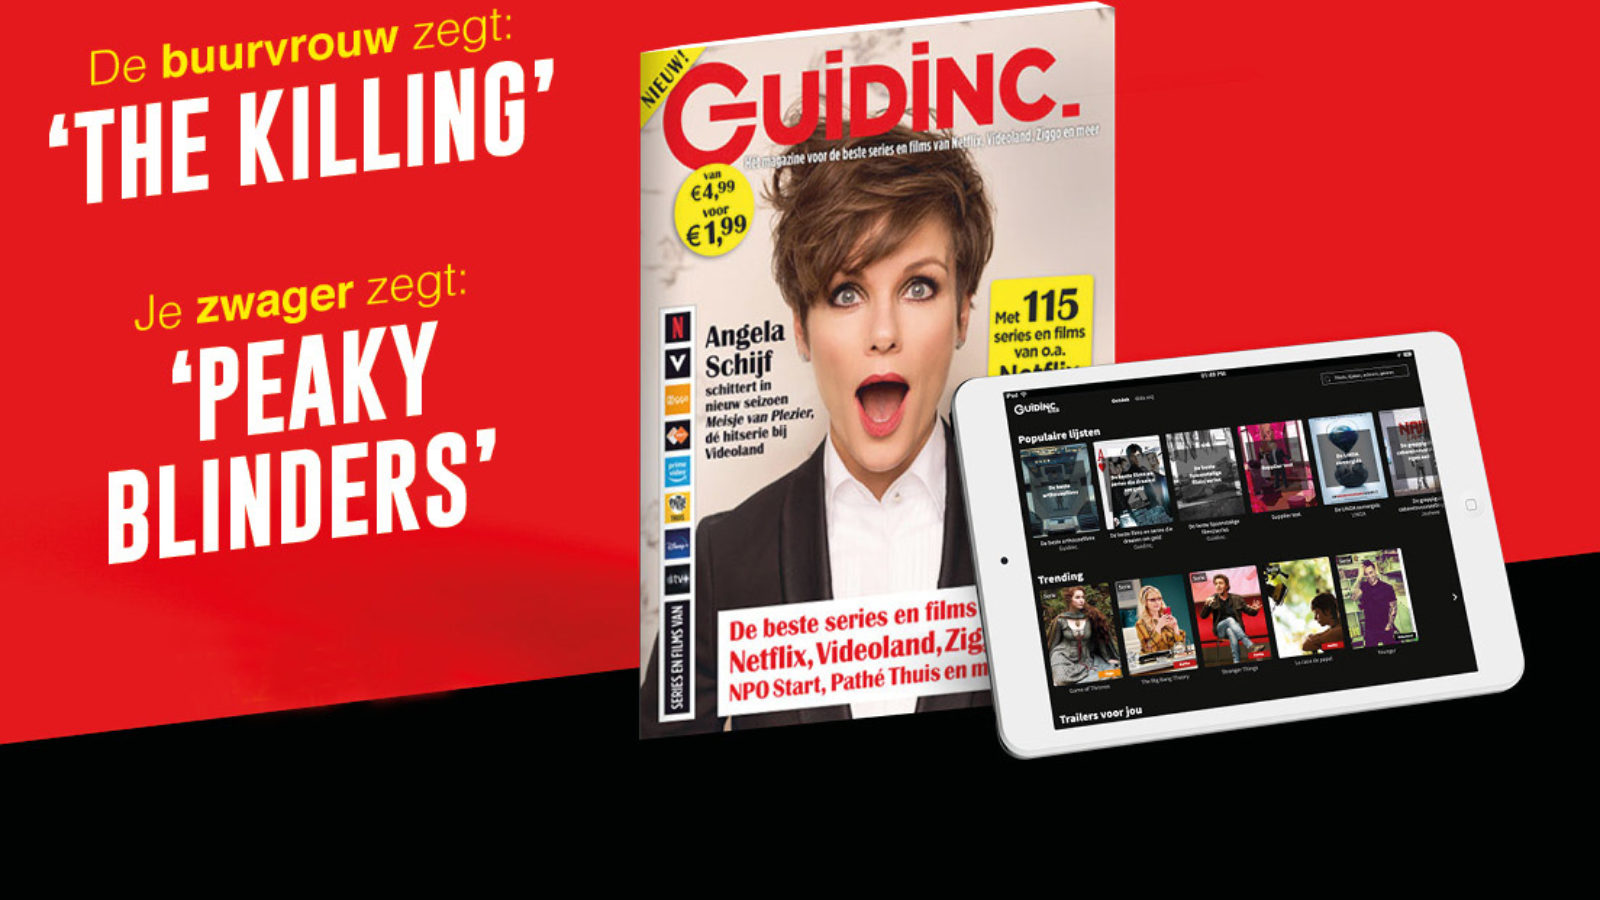 GUIDINC: ON DEMAND MAGAZINE